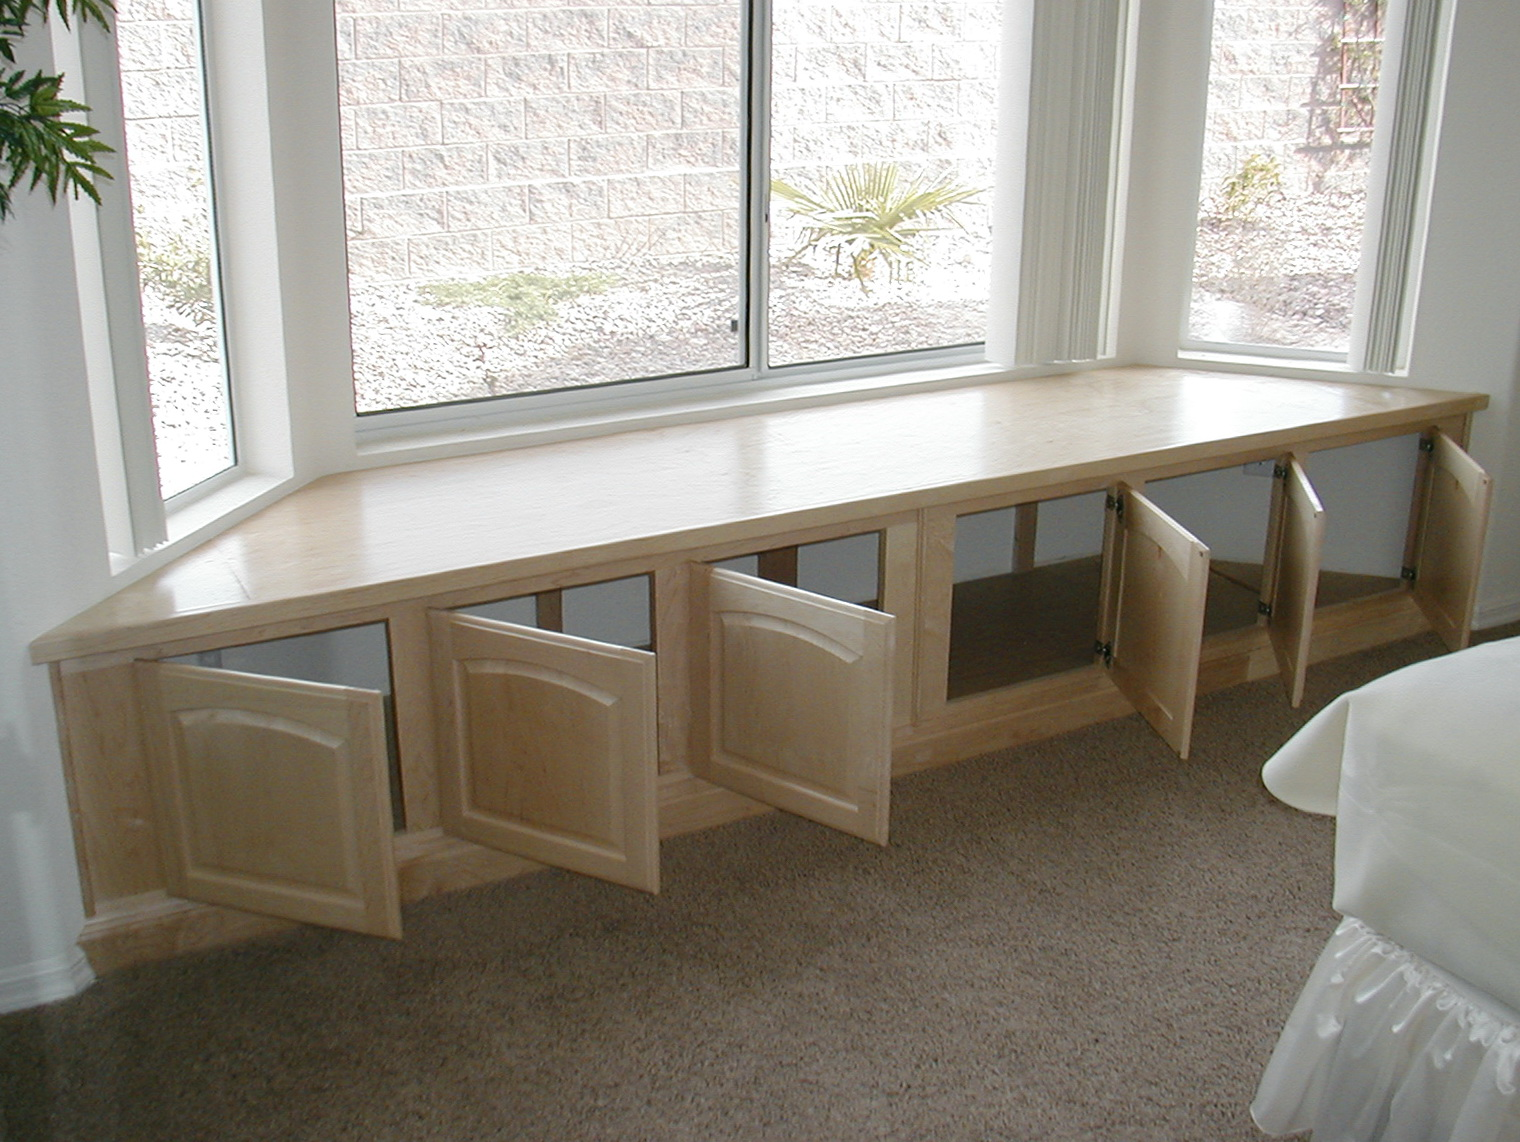 Charming Window Bench Part - 14: Bay Window Bench Seat Kitchen